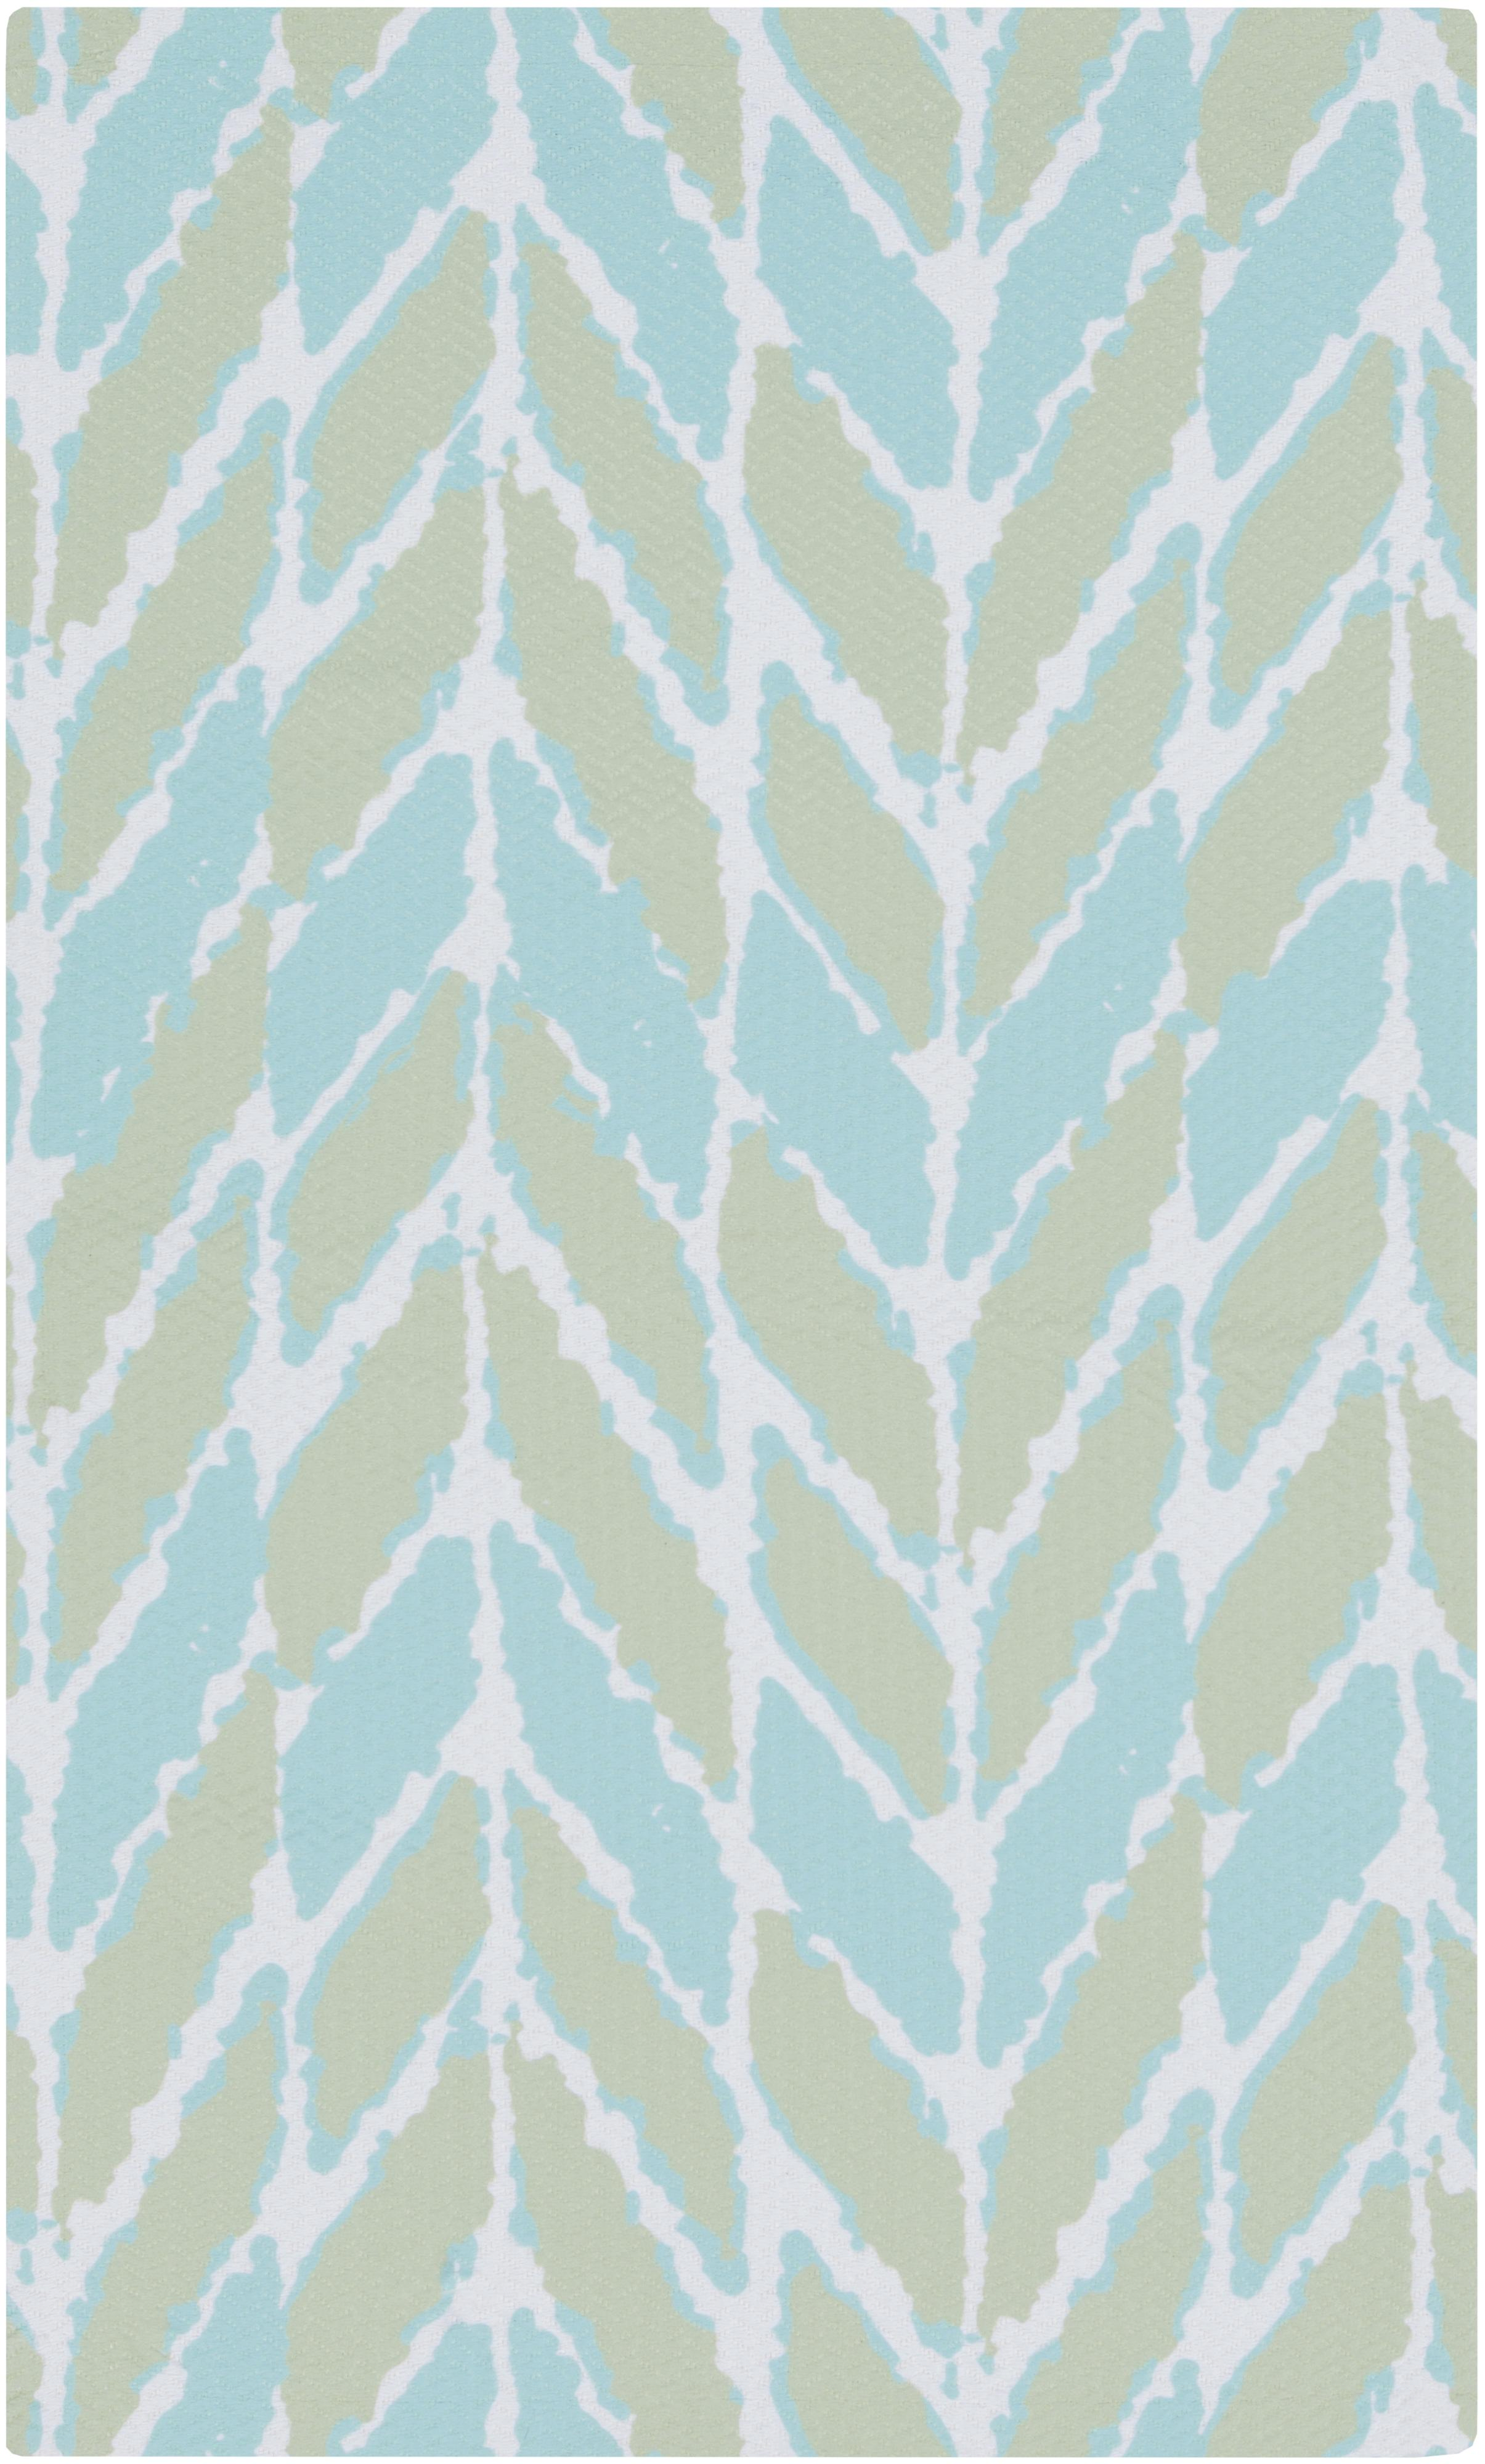 Surya Rugs Cape cod 2' x 3' - Item Number: CCD1003-23